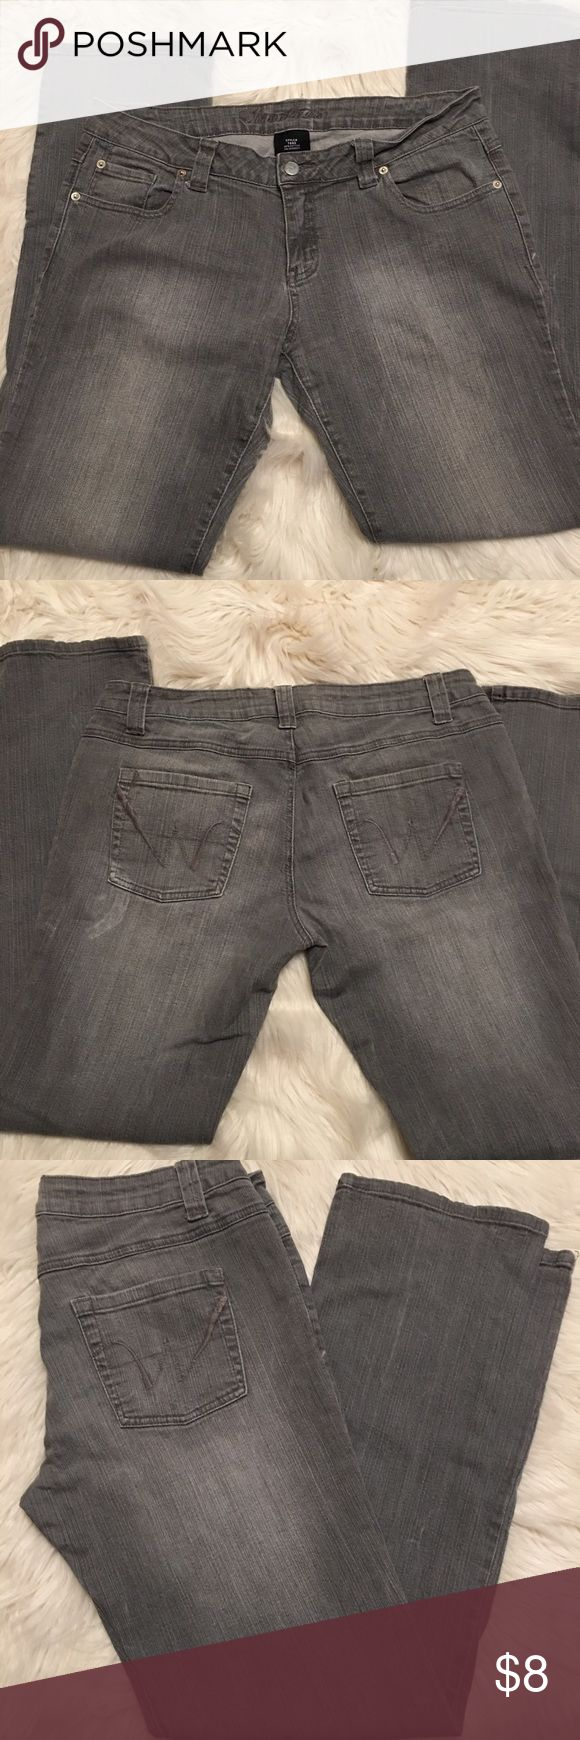 """🎉🎉Wet Seal Stretch Jeans🎉🎉 Gray stretch jeans, size 15R length 31"""", there is some discoloration by one of the back pockets as seen in the photos Wet Seal Jeans Straight Leg"""